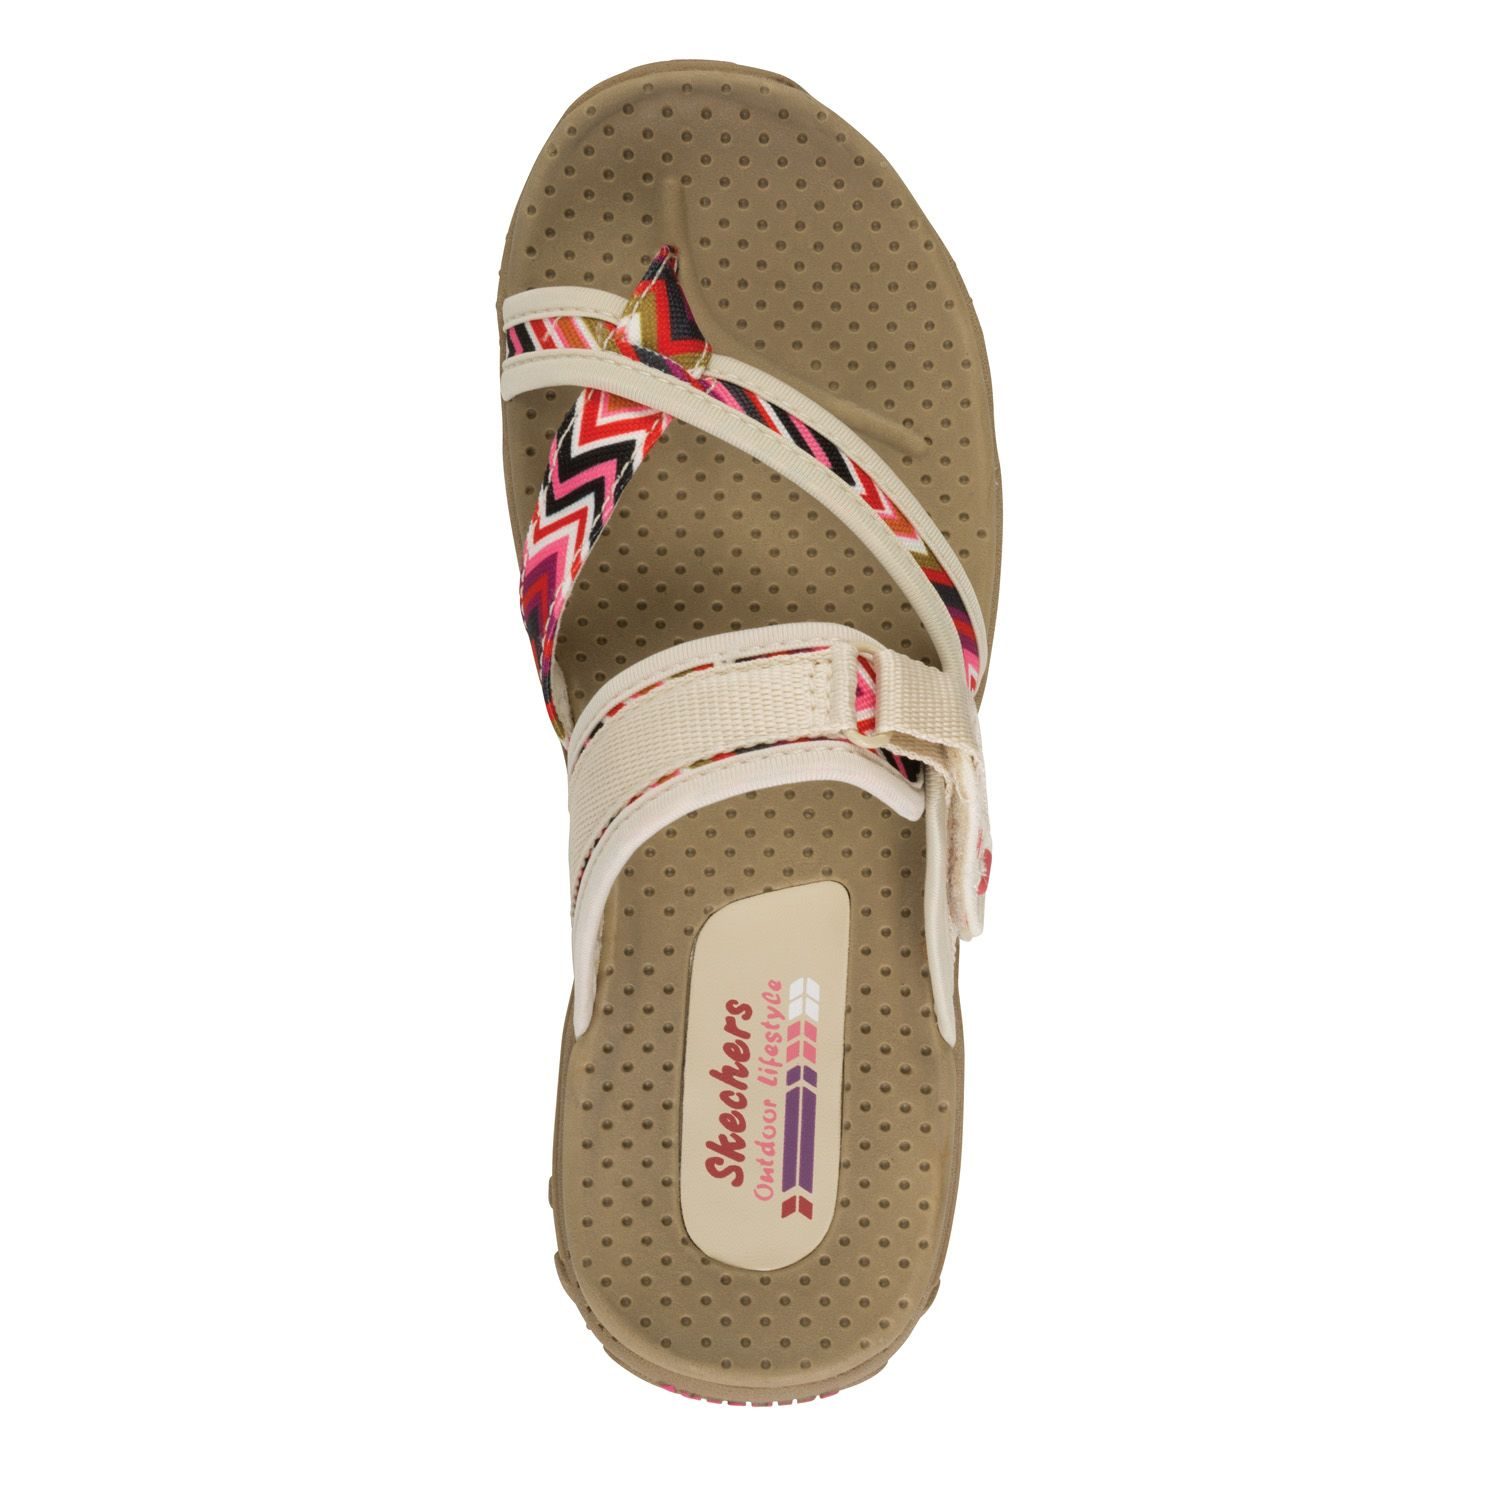 53cb77672fde Skechers Sandals - Shoes